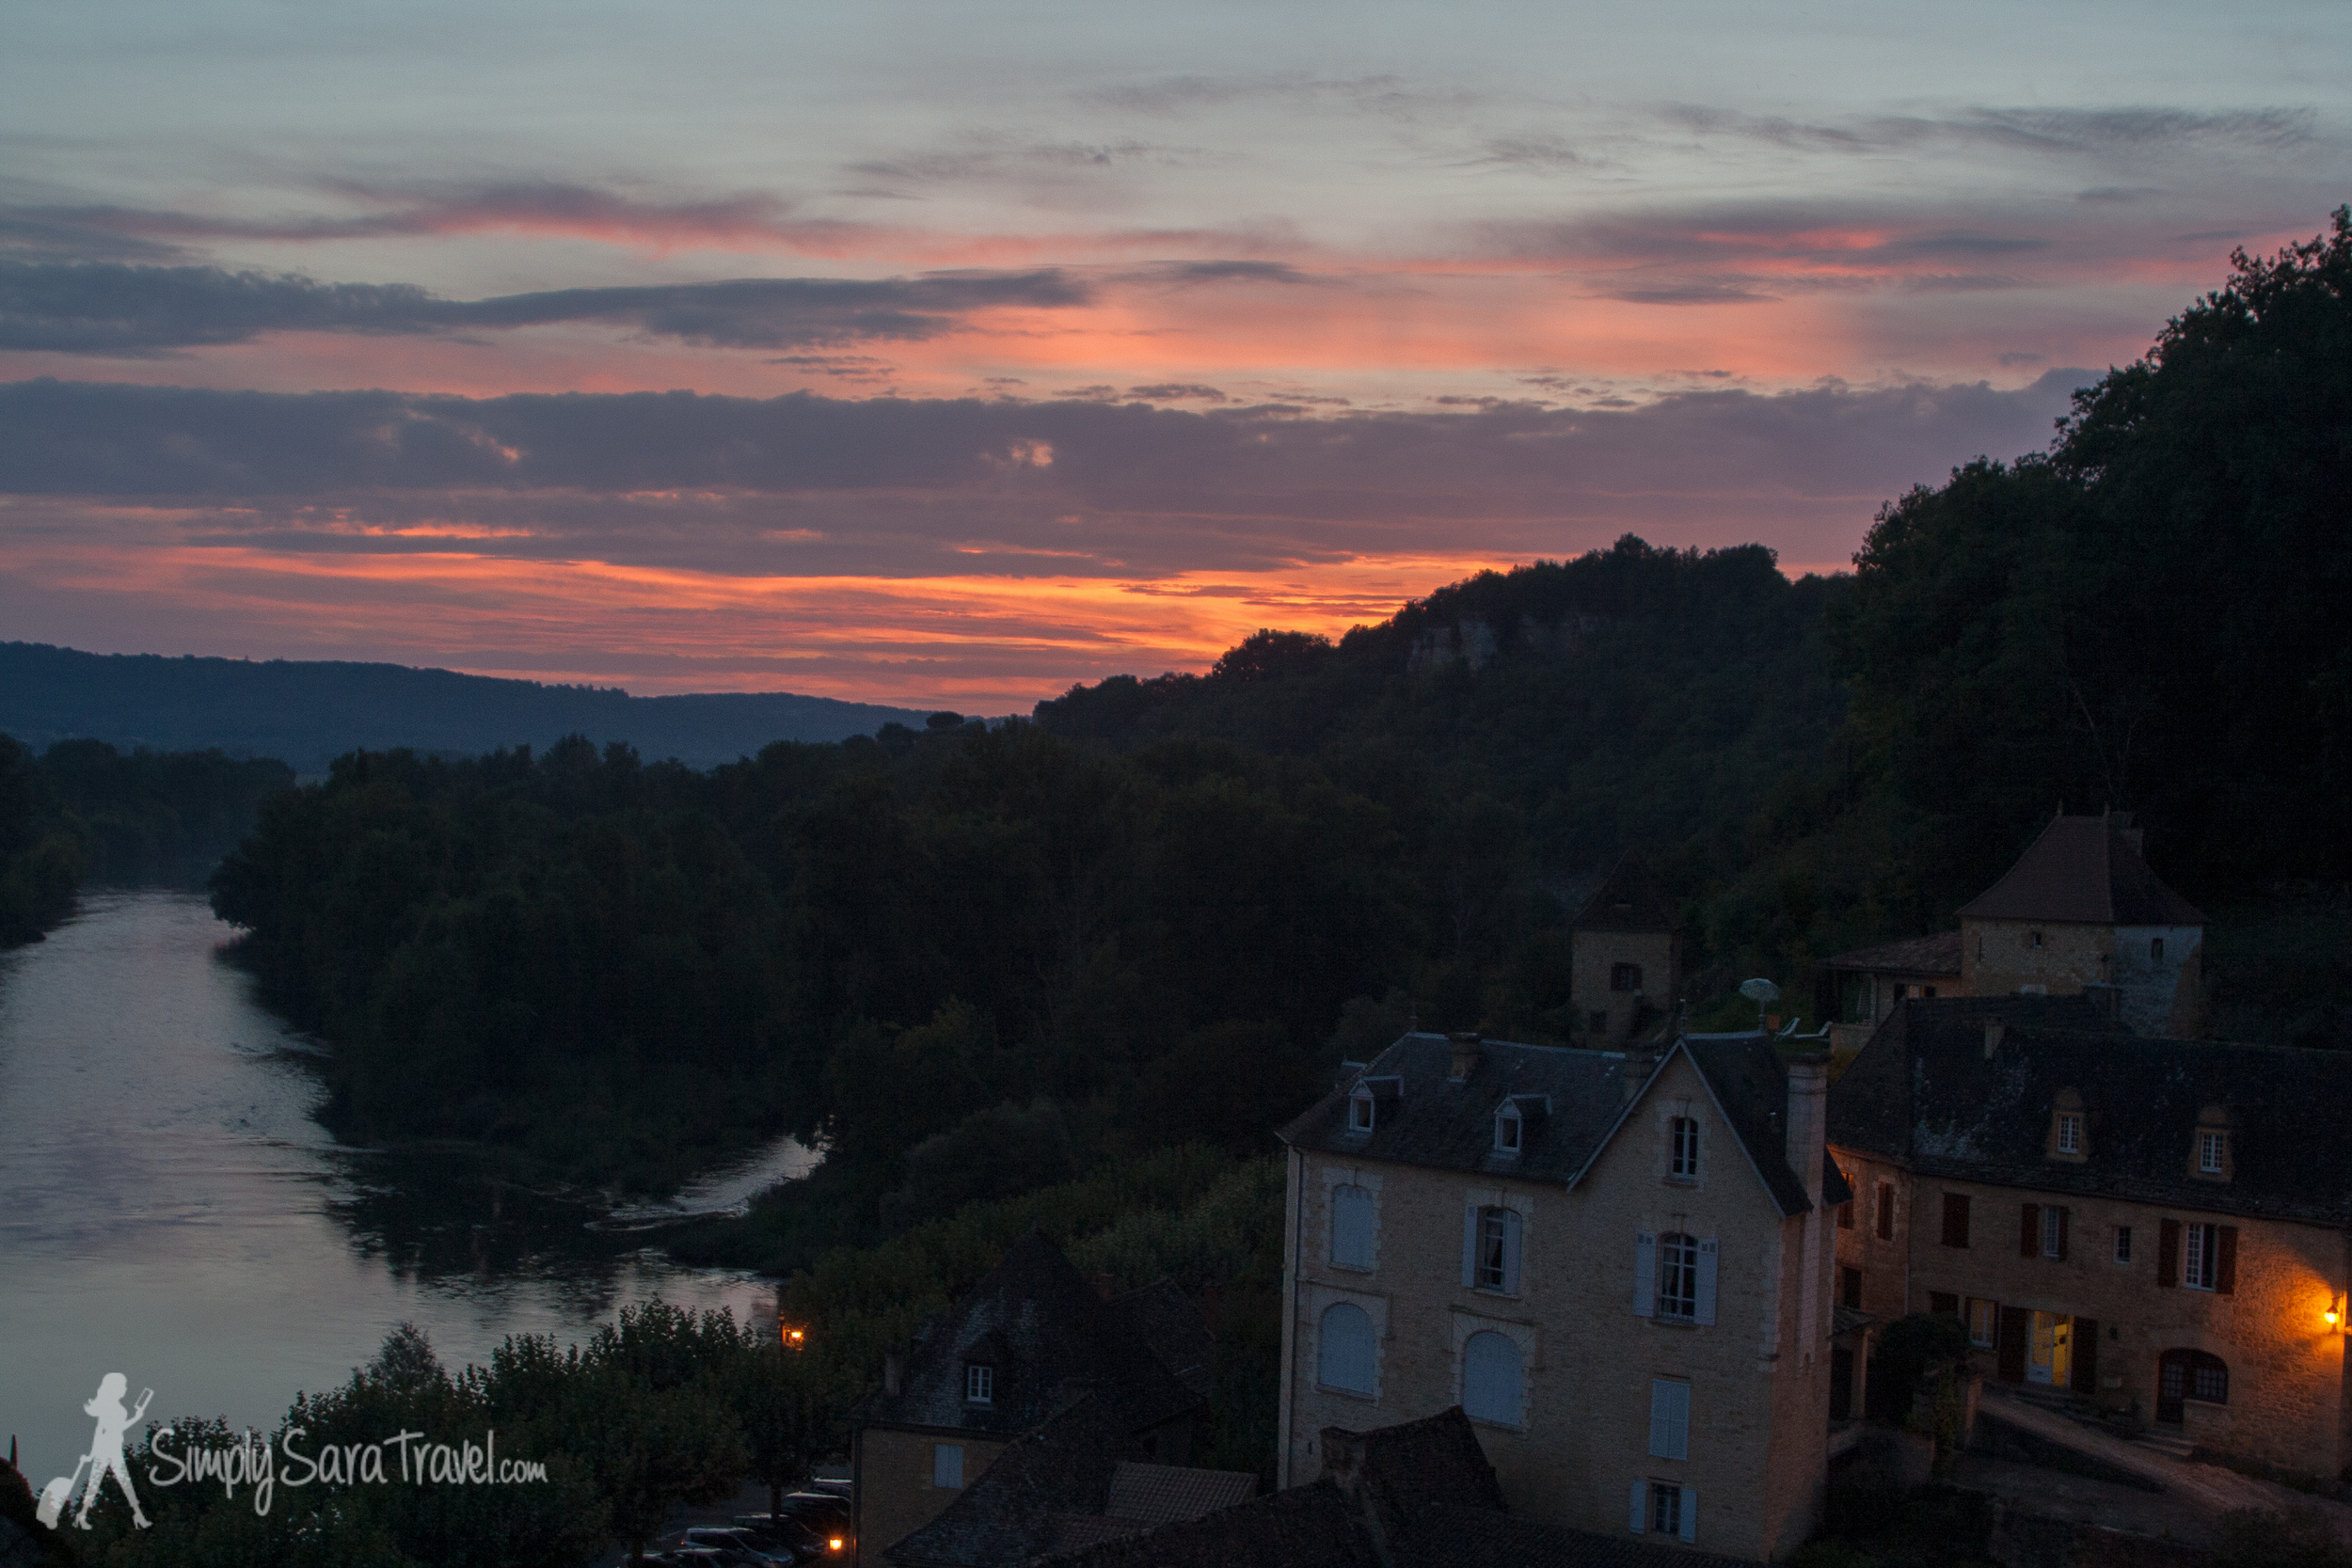 I stepped out of the house to find this sunset over the Dordogne river!